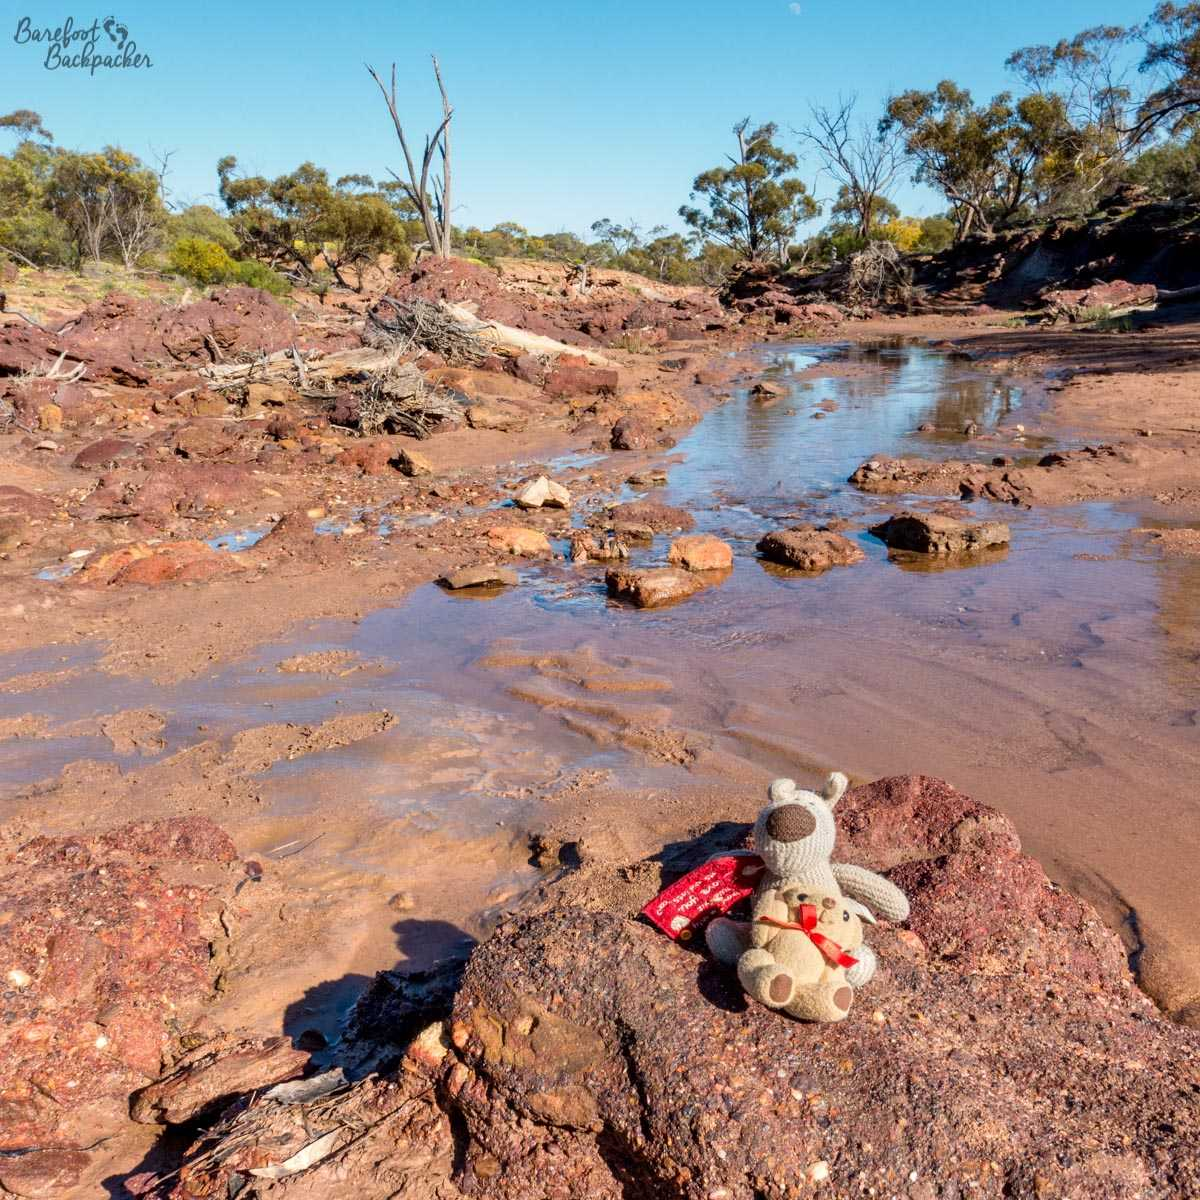 My companions Baby Ian And Dave, sitting quietly on the rocks by the river that runs through the Coalseam site.